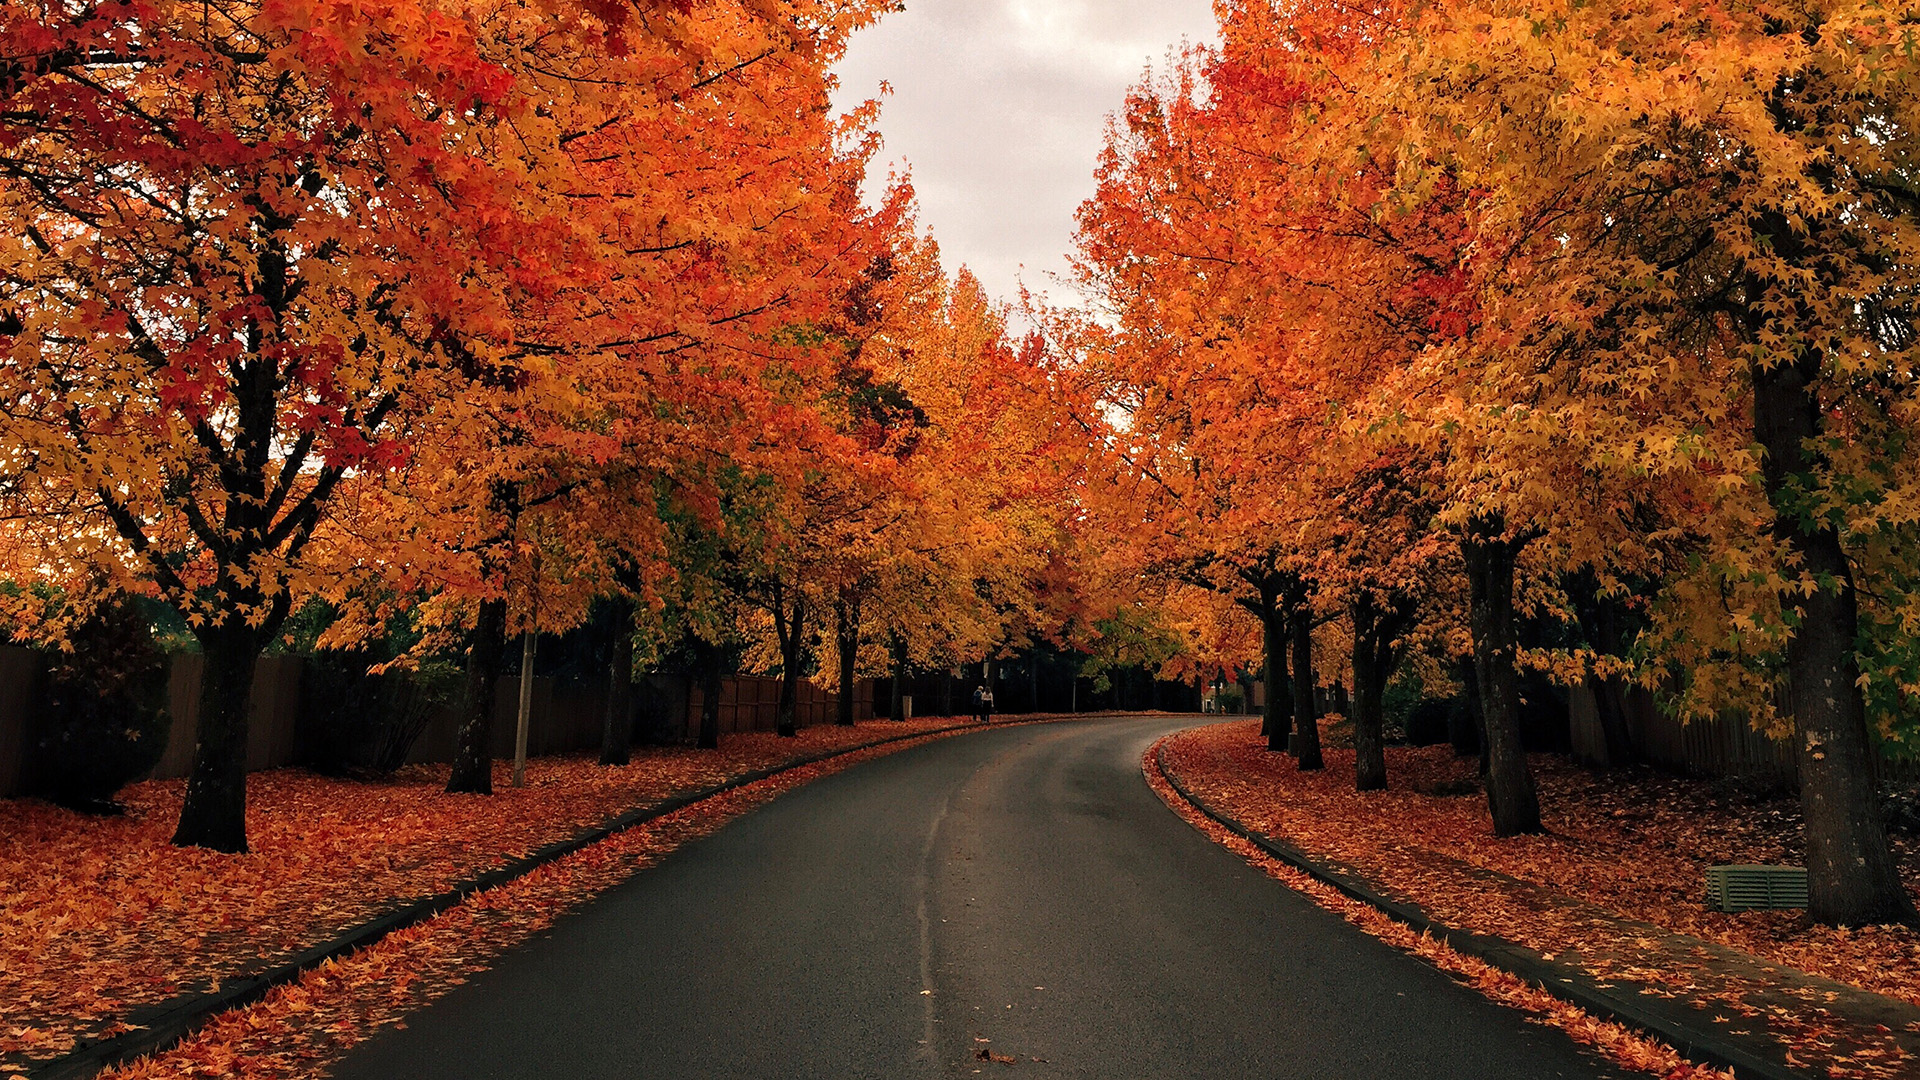 Wallpaper Images Of Fall Trees Lined Lake Tree Lined Road In Autumn Windows 10 Spotlight Images